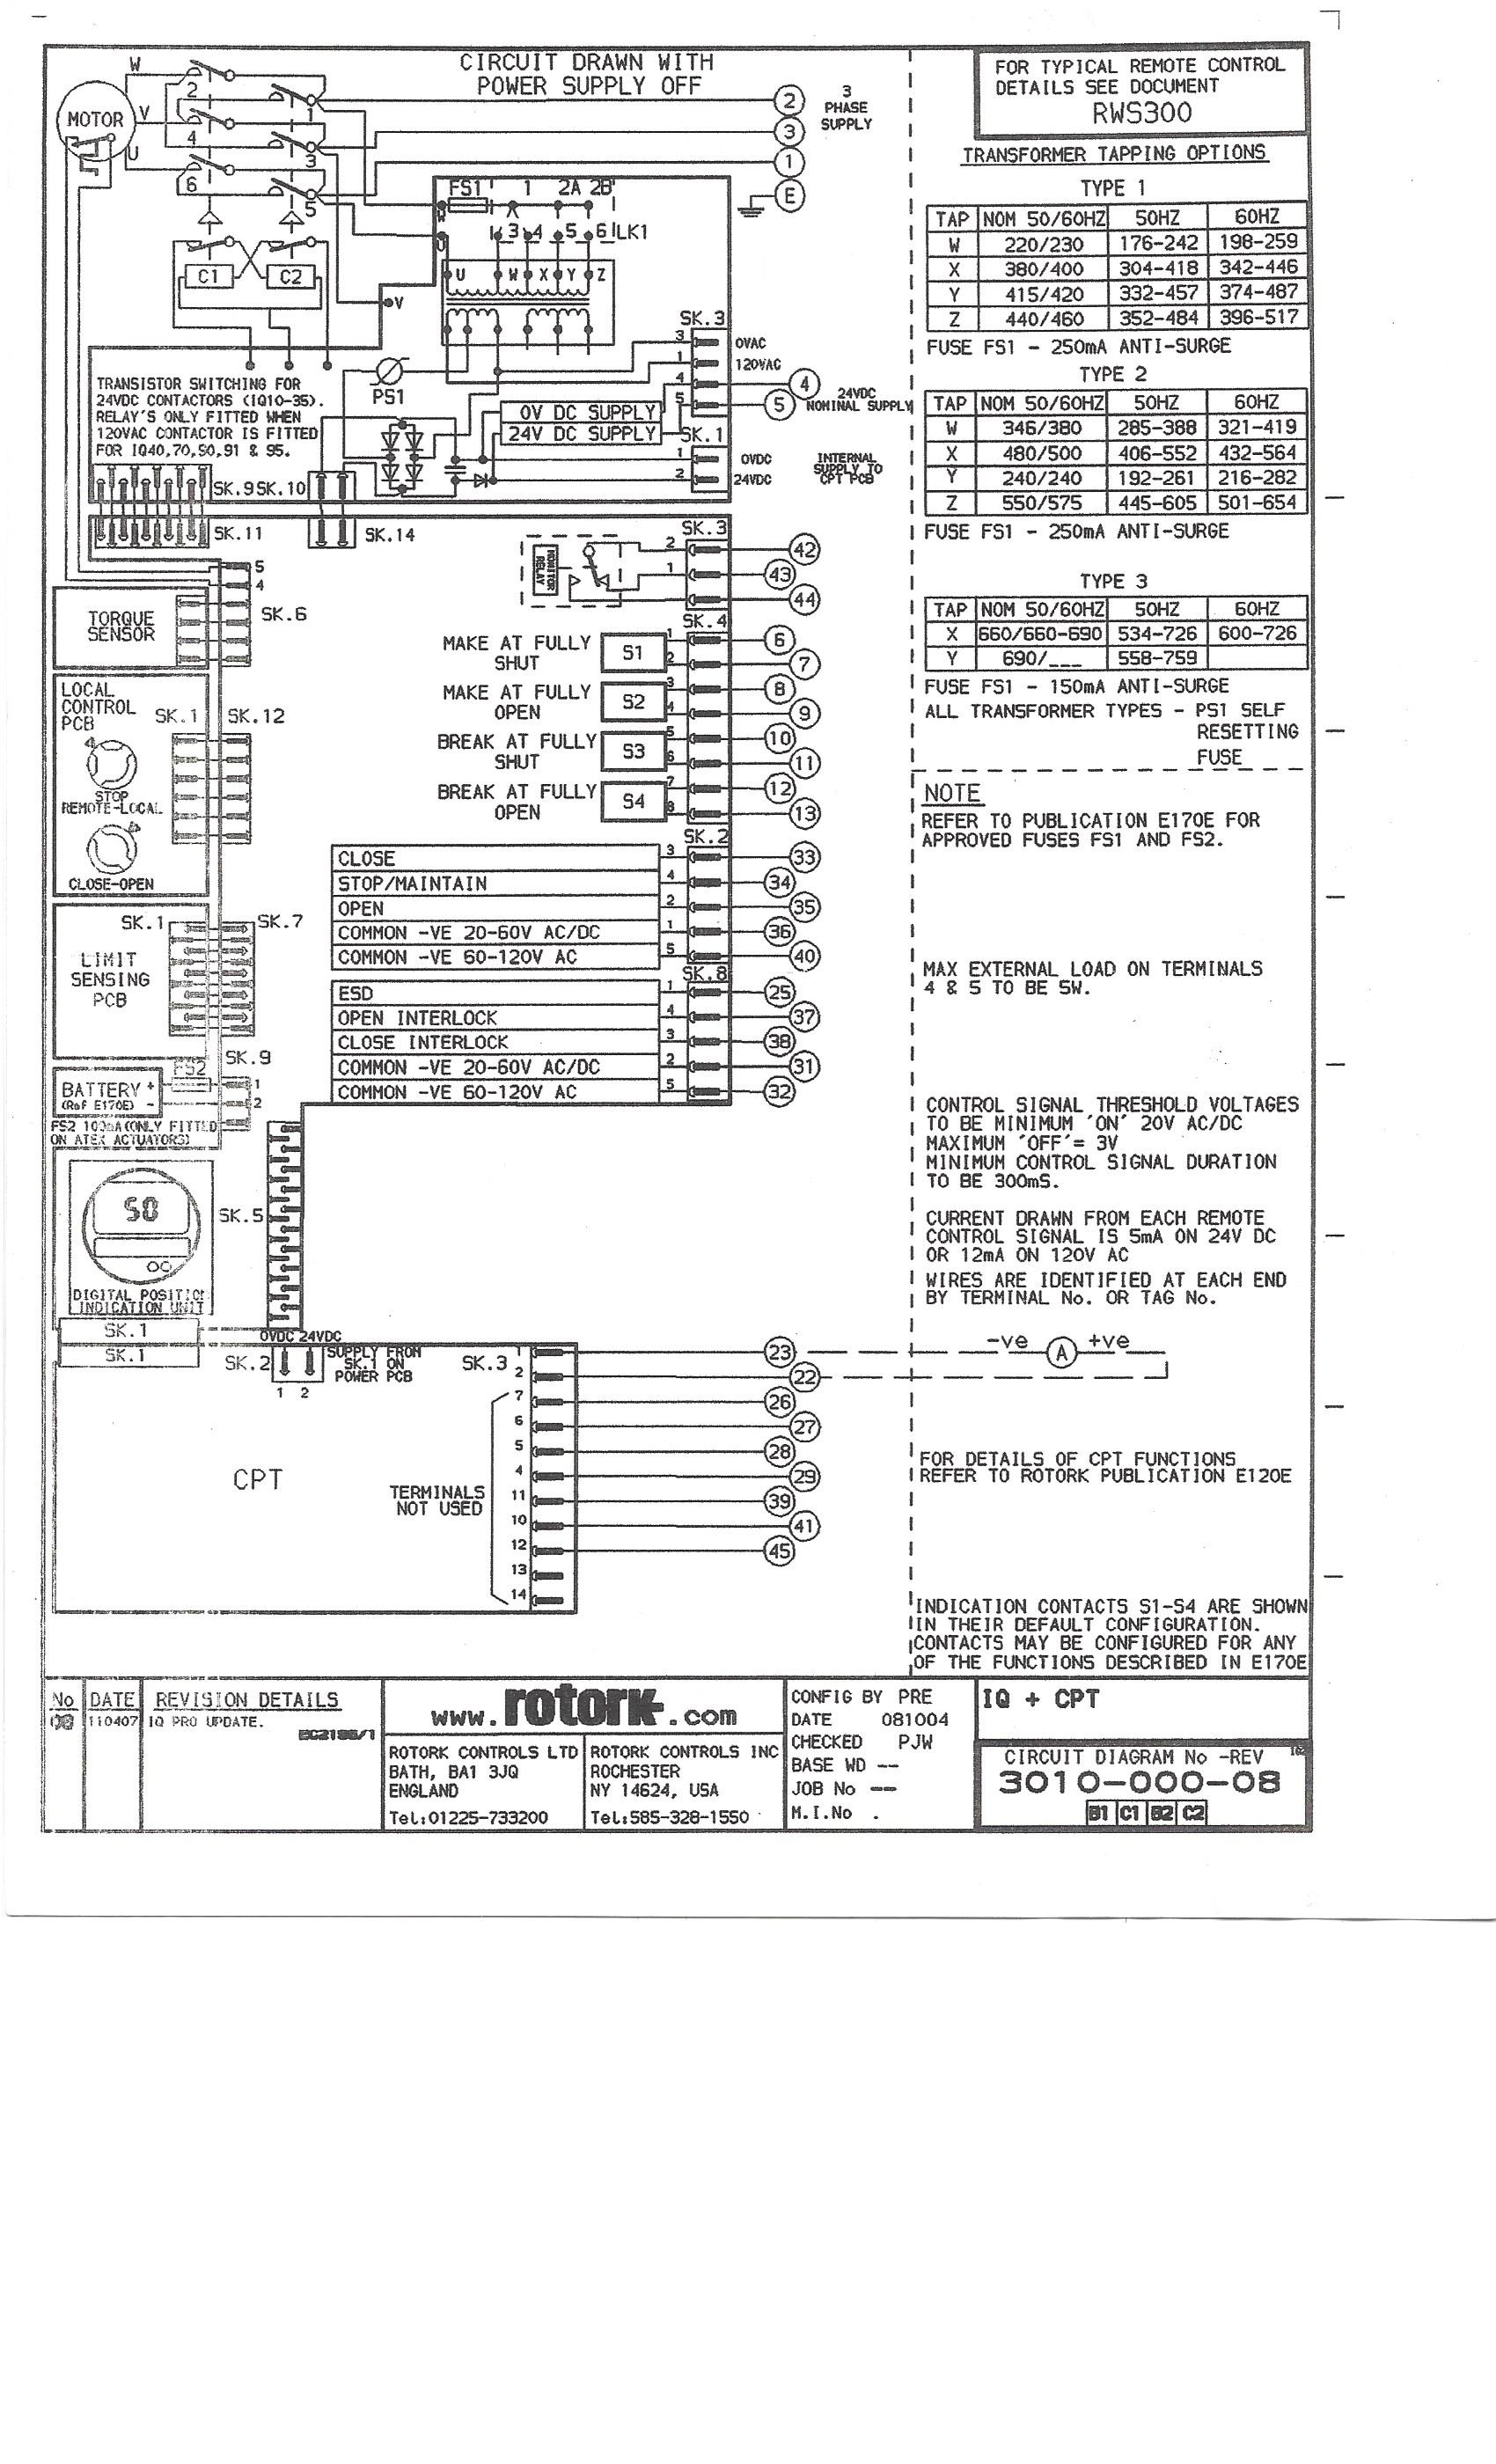 VELAN2 rotork iqt wiring diagram siemens wiring diagram \u2022 wiring diagrams rotork actuator wiring diagrams at bayanpartner.co